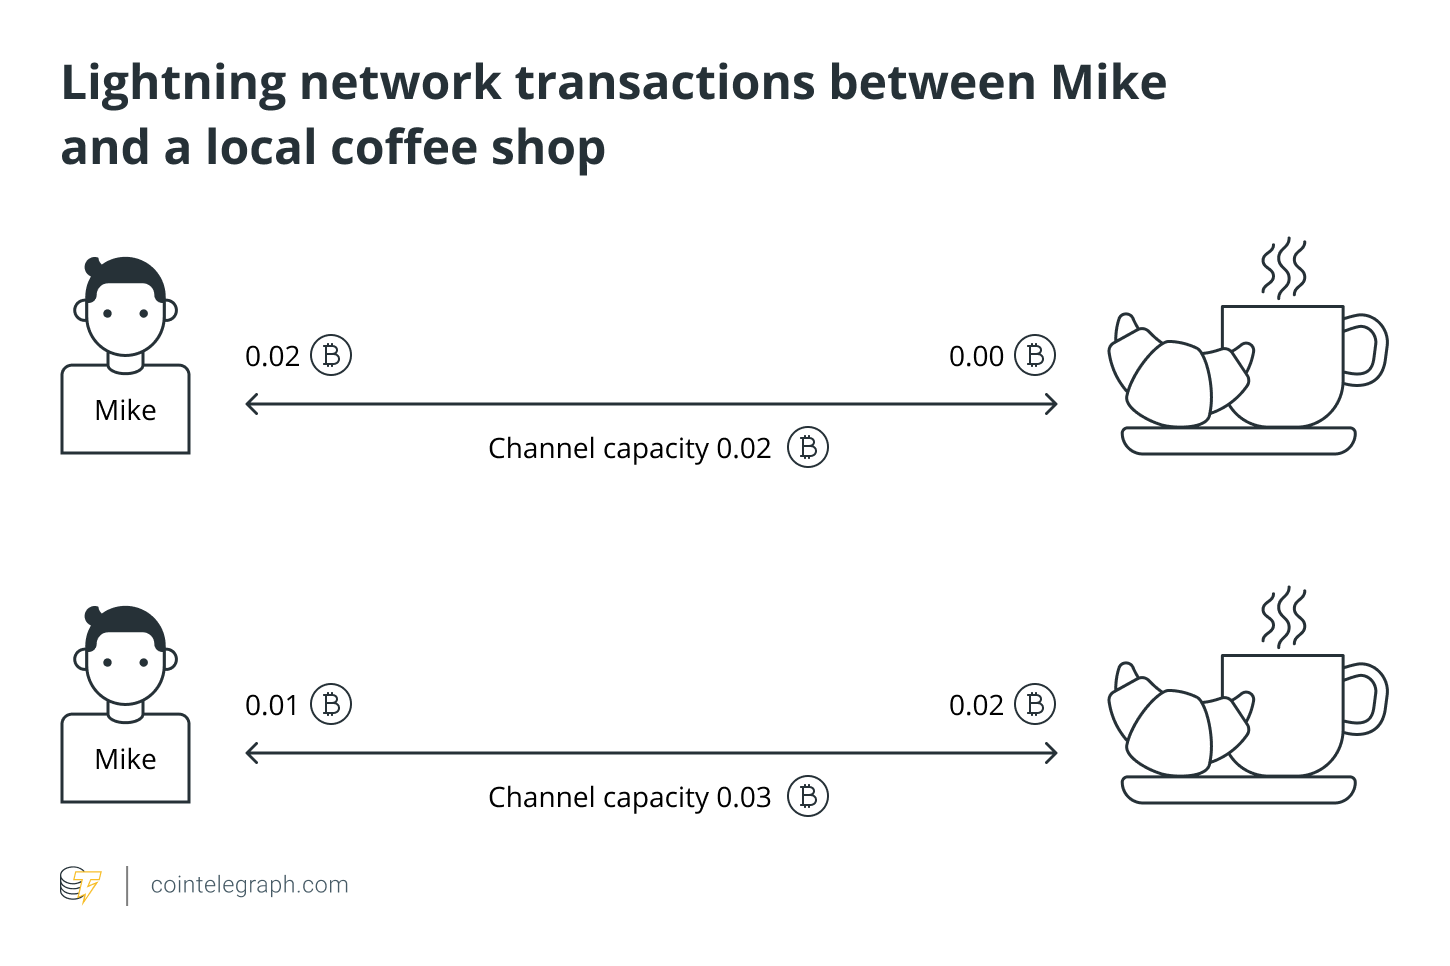 Lightning network transactions between Mike and a local coffee shop